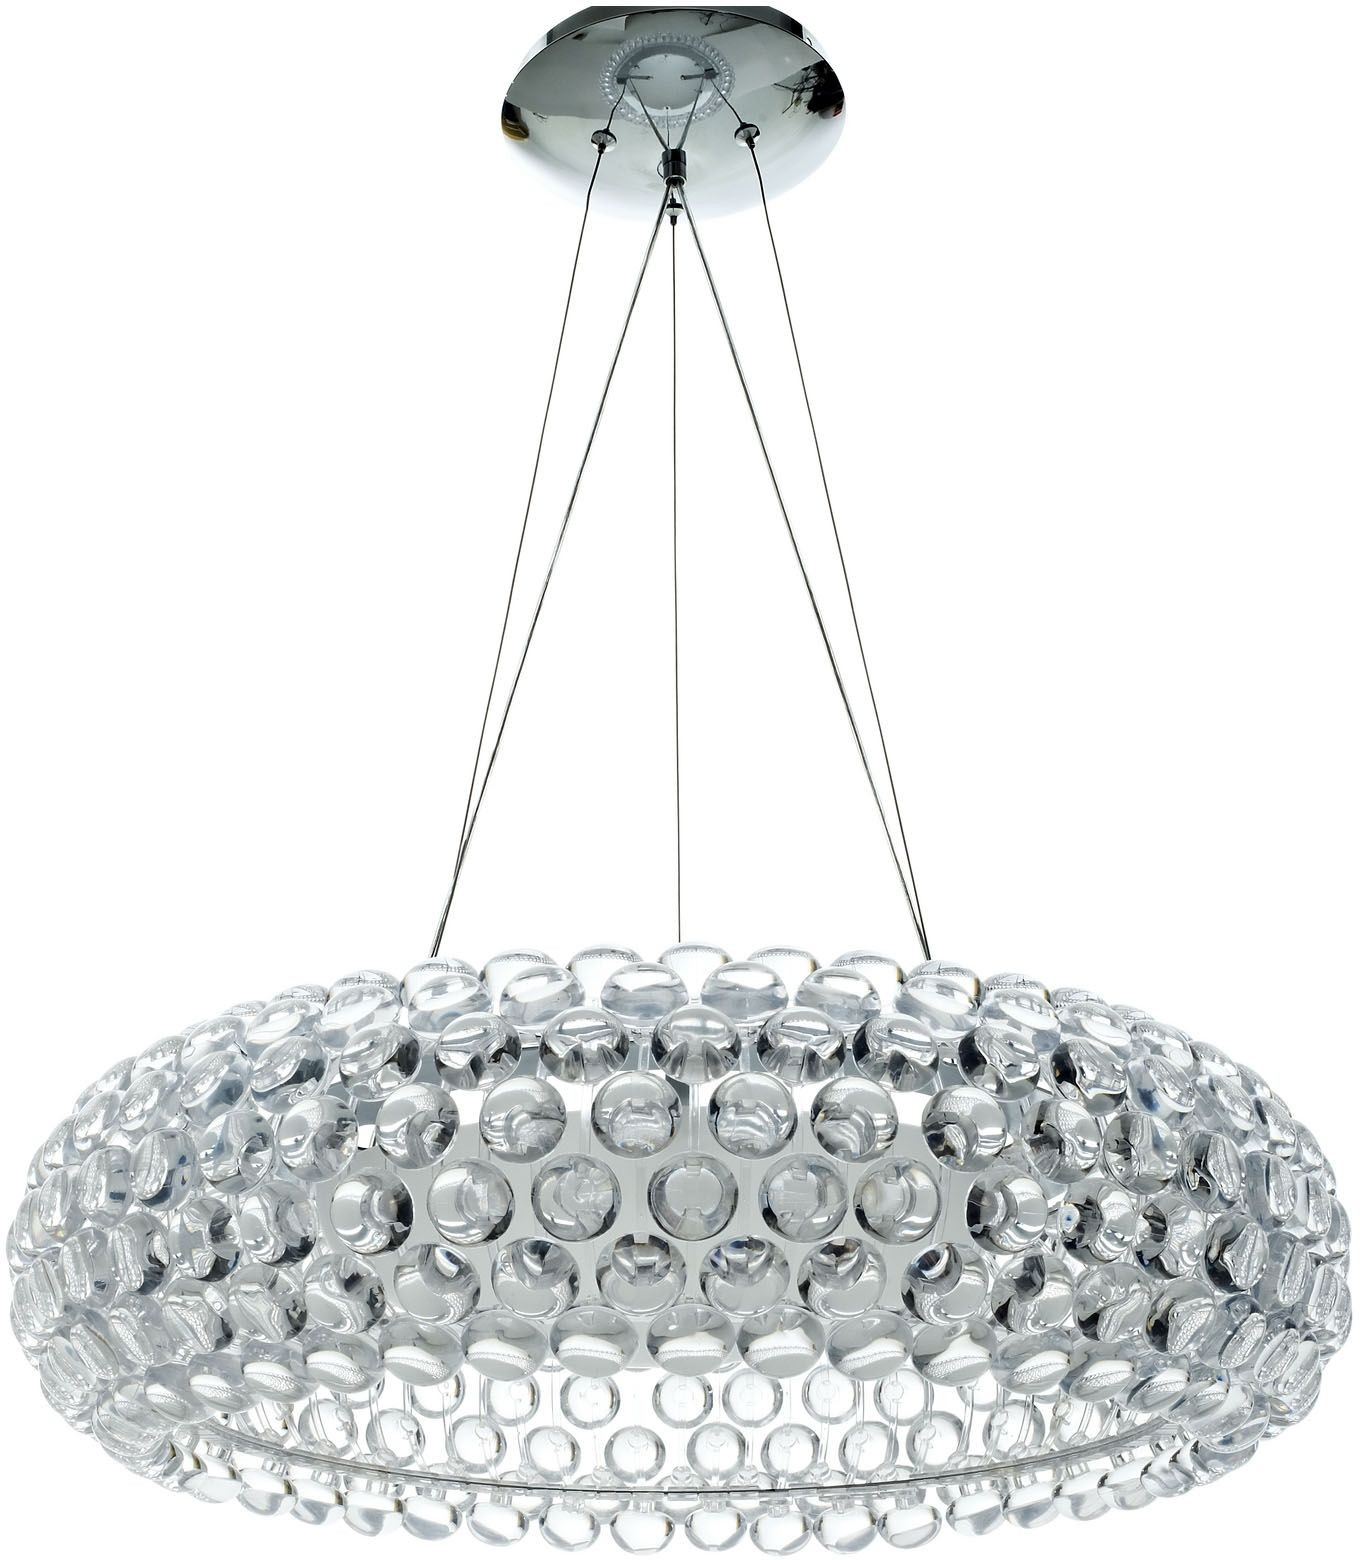 Acrylic Crystal Halo Chandelier From Renegade Eei 669